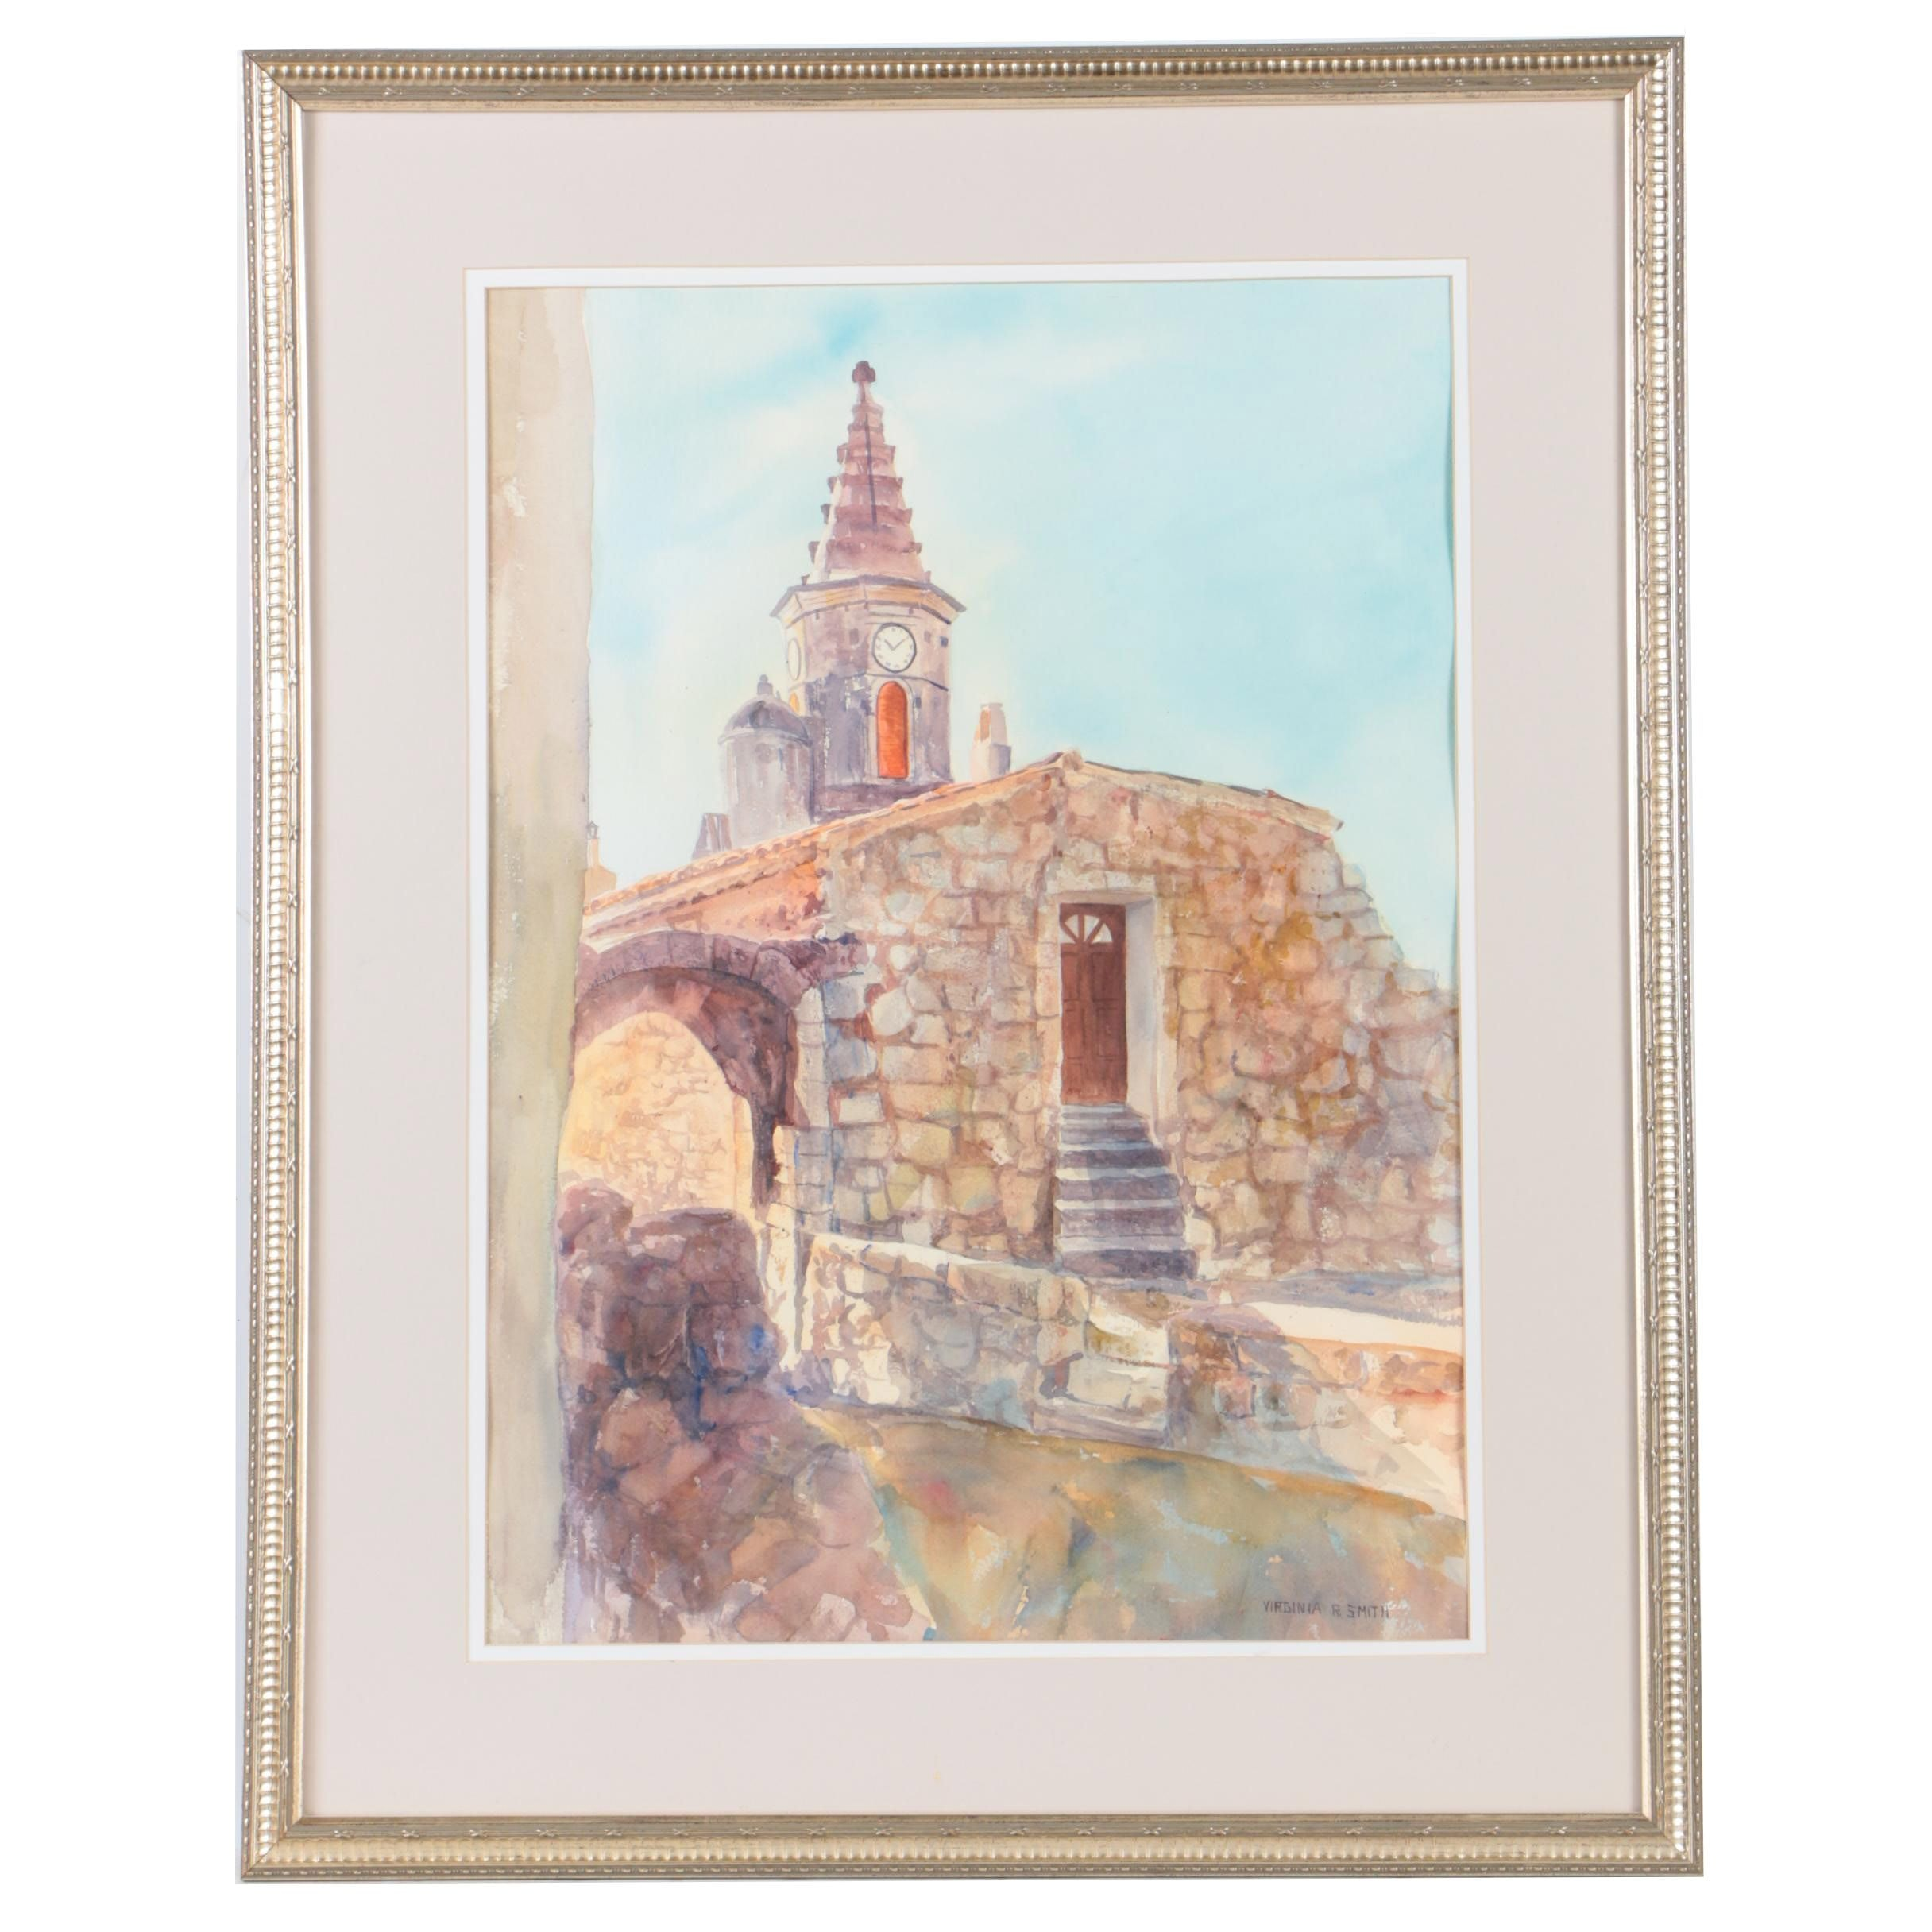 Virginia R. Smith Watercolor Painting of a Stone Building